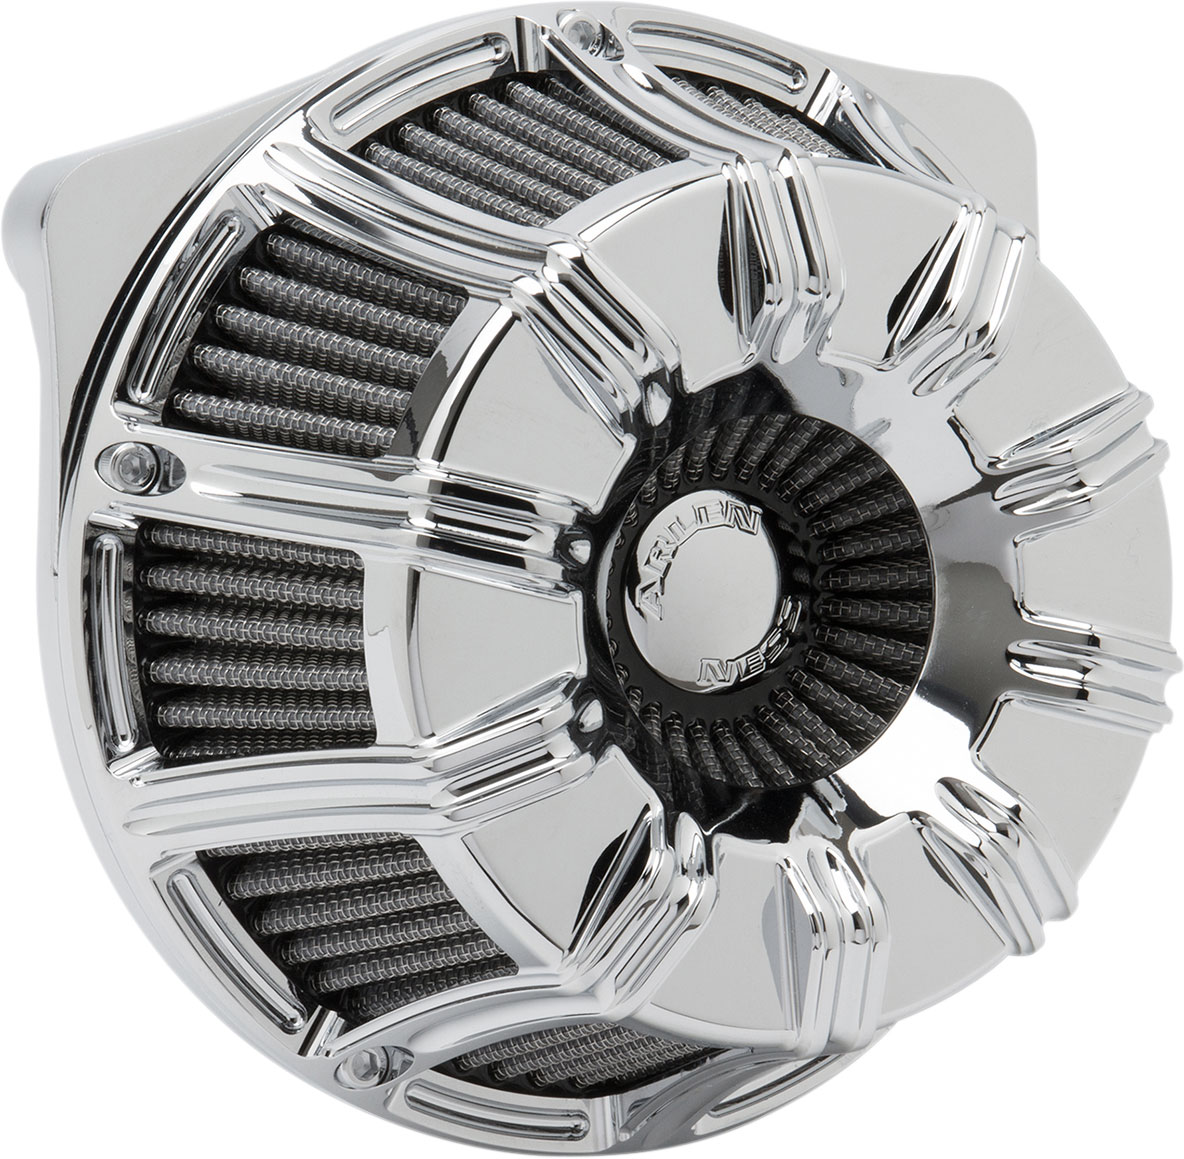 Arlen Ness - 18-946 - Inverted Series Air Cleaner Kit, 10-Gauge - Chrome